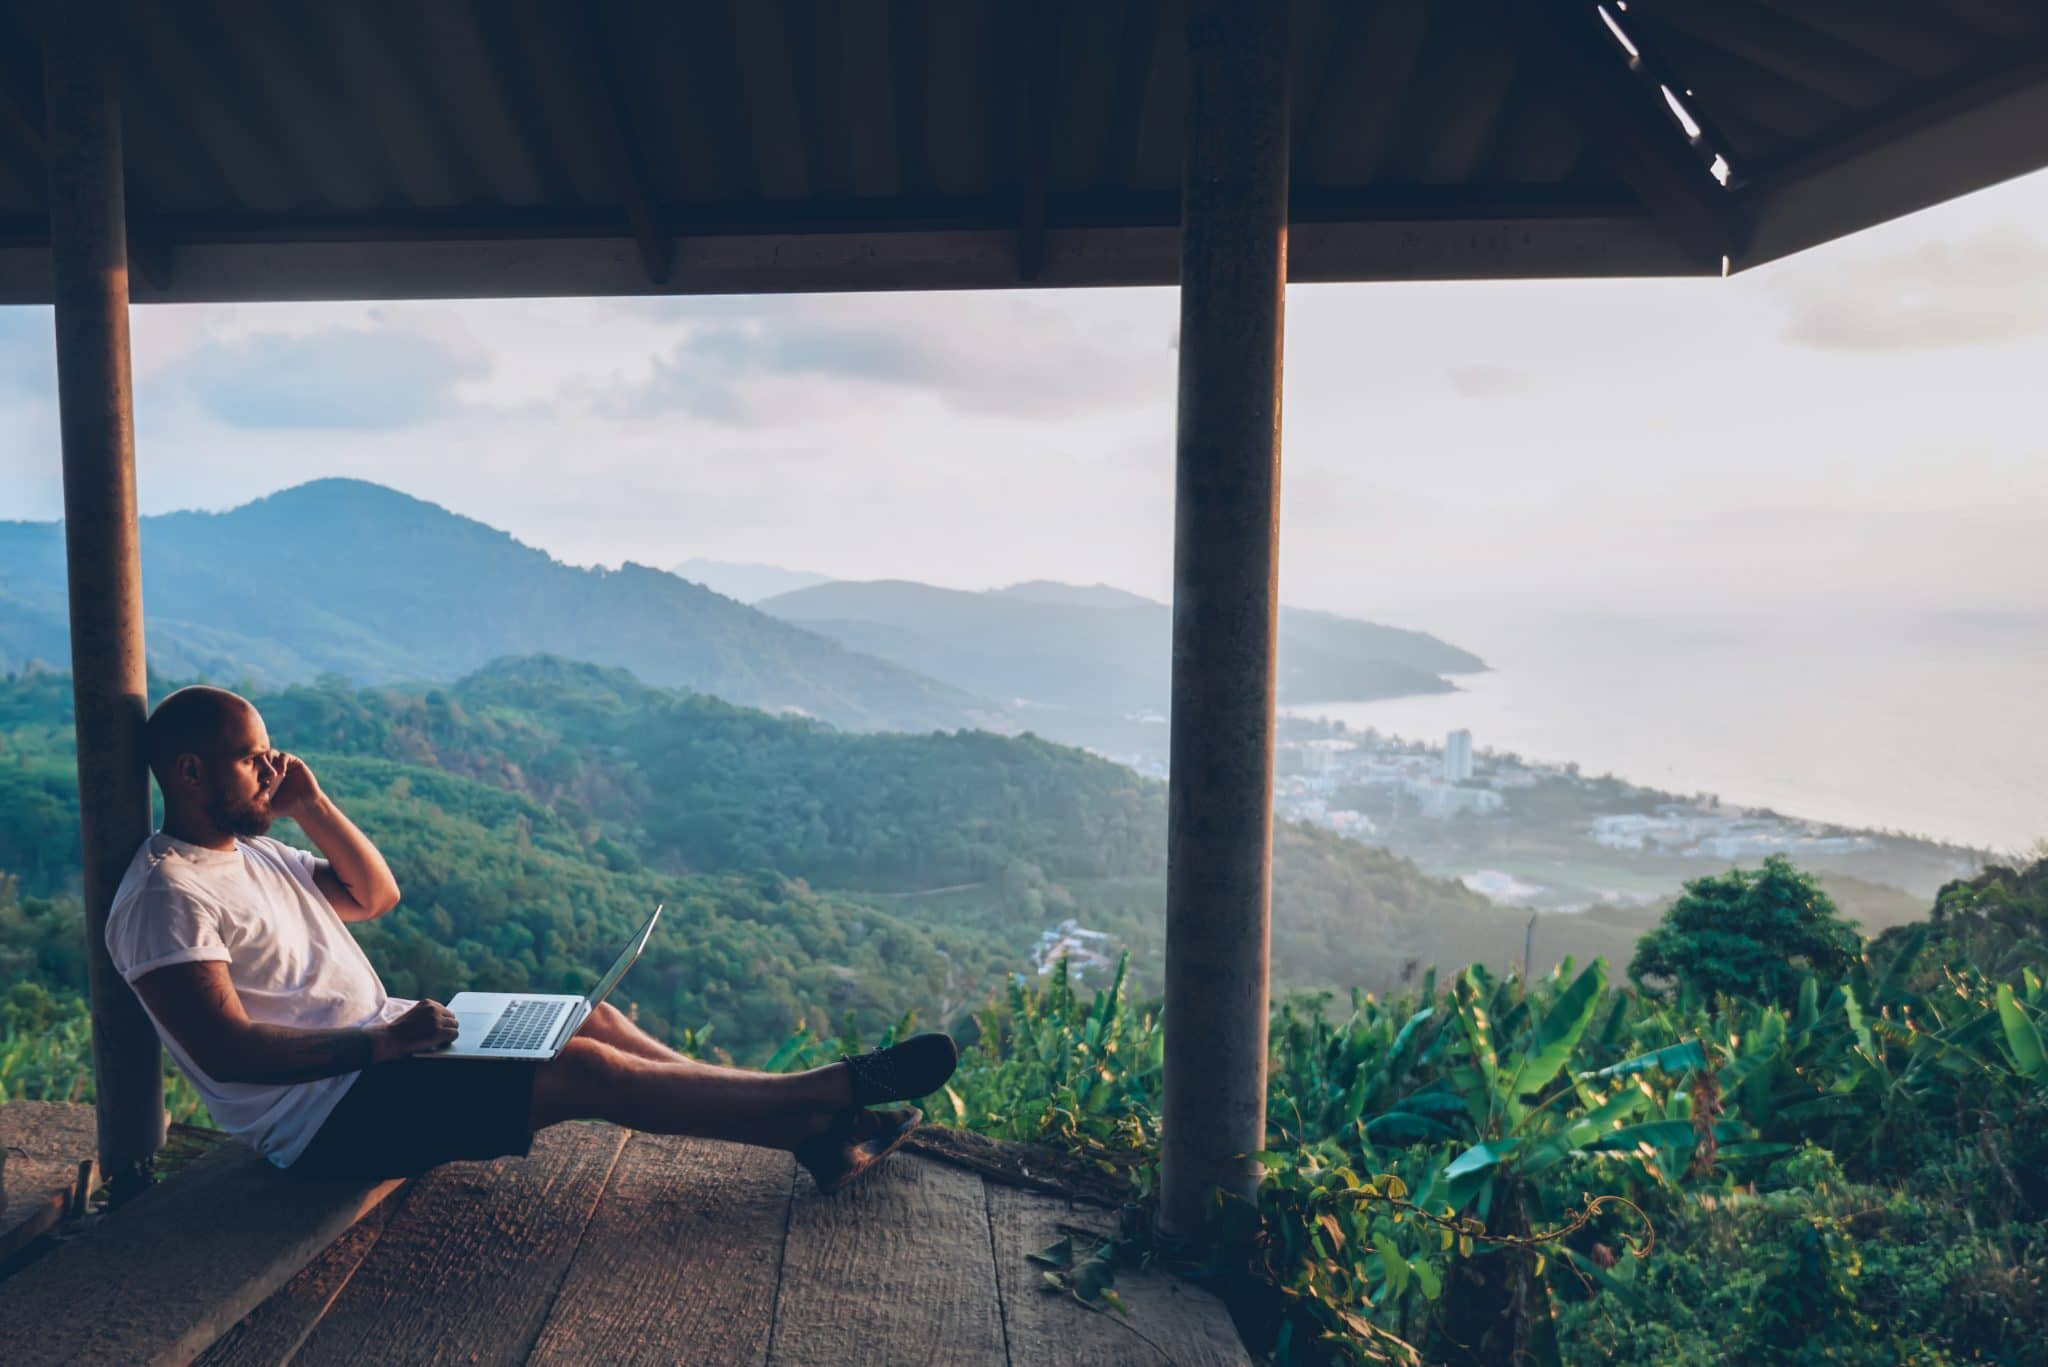 Man working remotely overlooking beautiful scenery